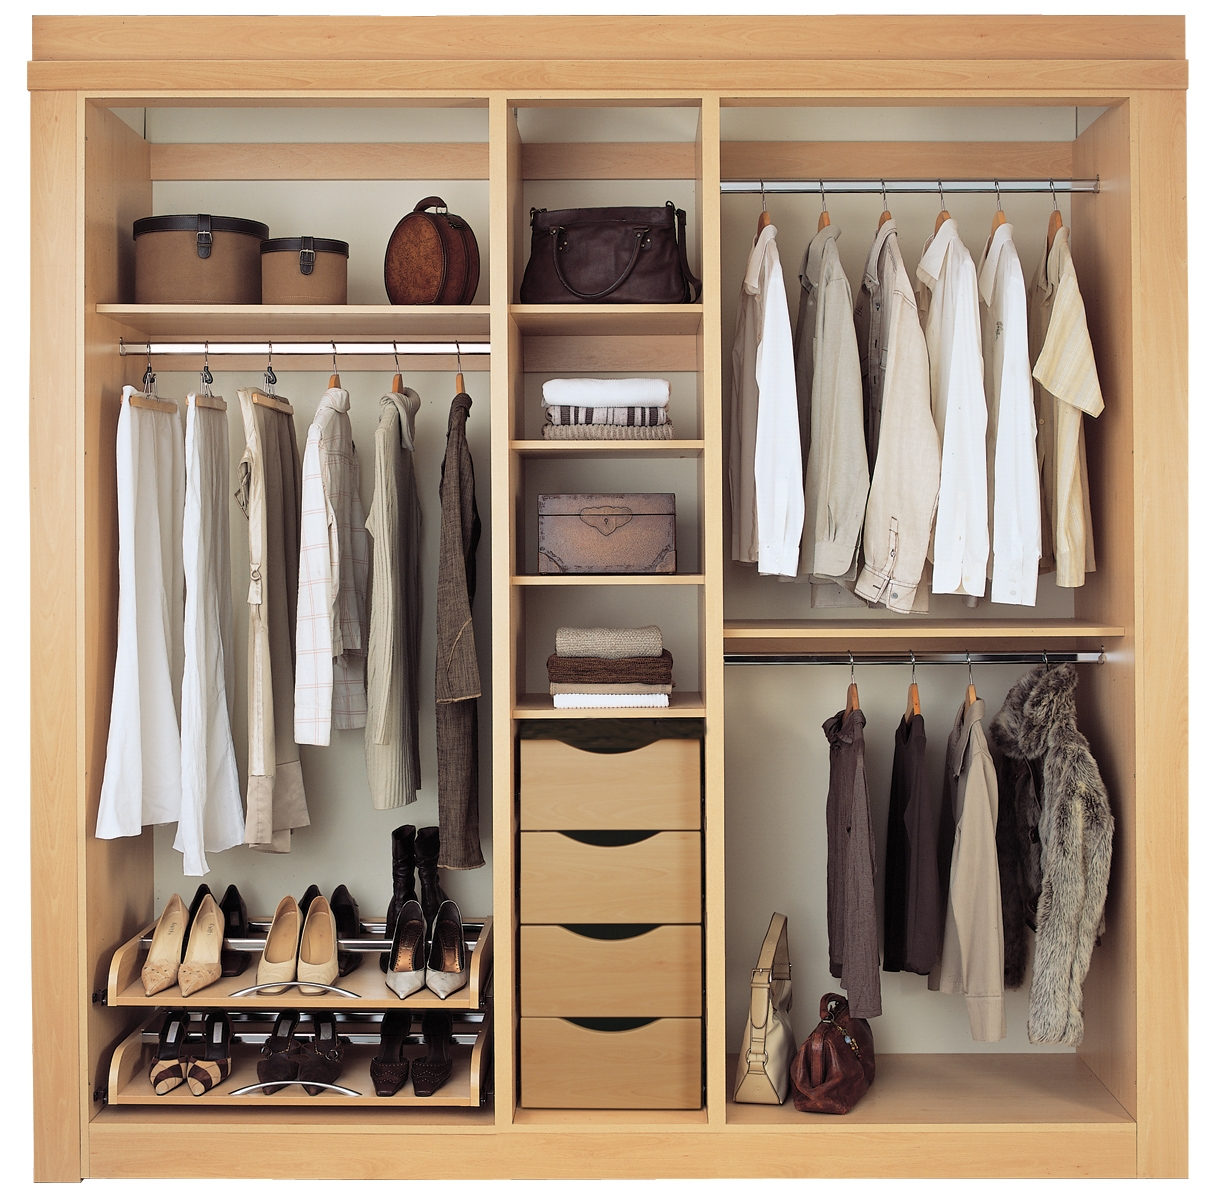 Drawers Design Is Different And Unique Built In Storage Solutions Within Bedroom Wardrobe Storages (View 7 of 25)